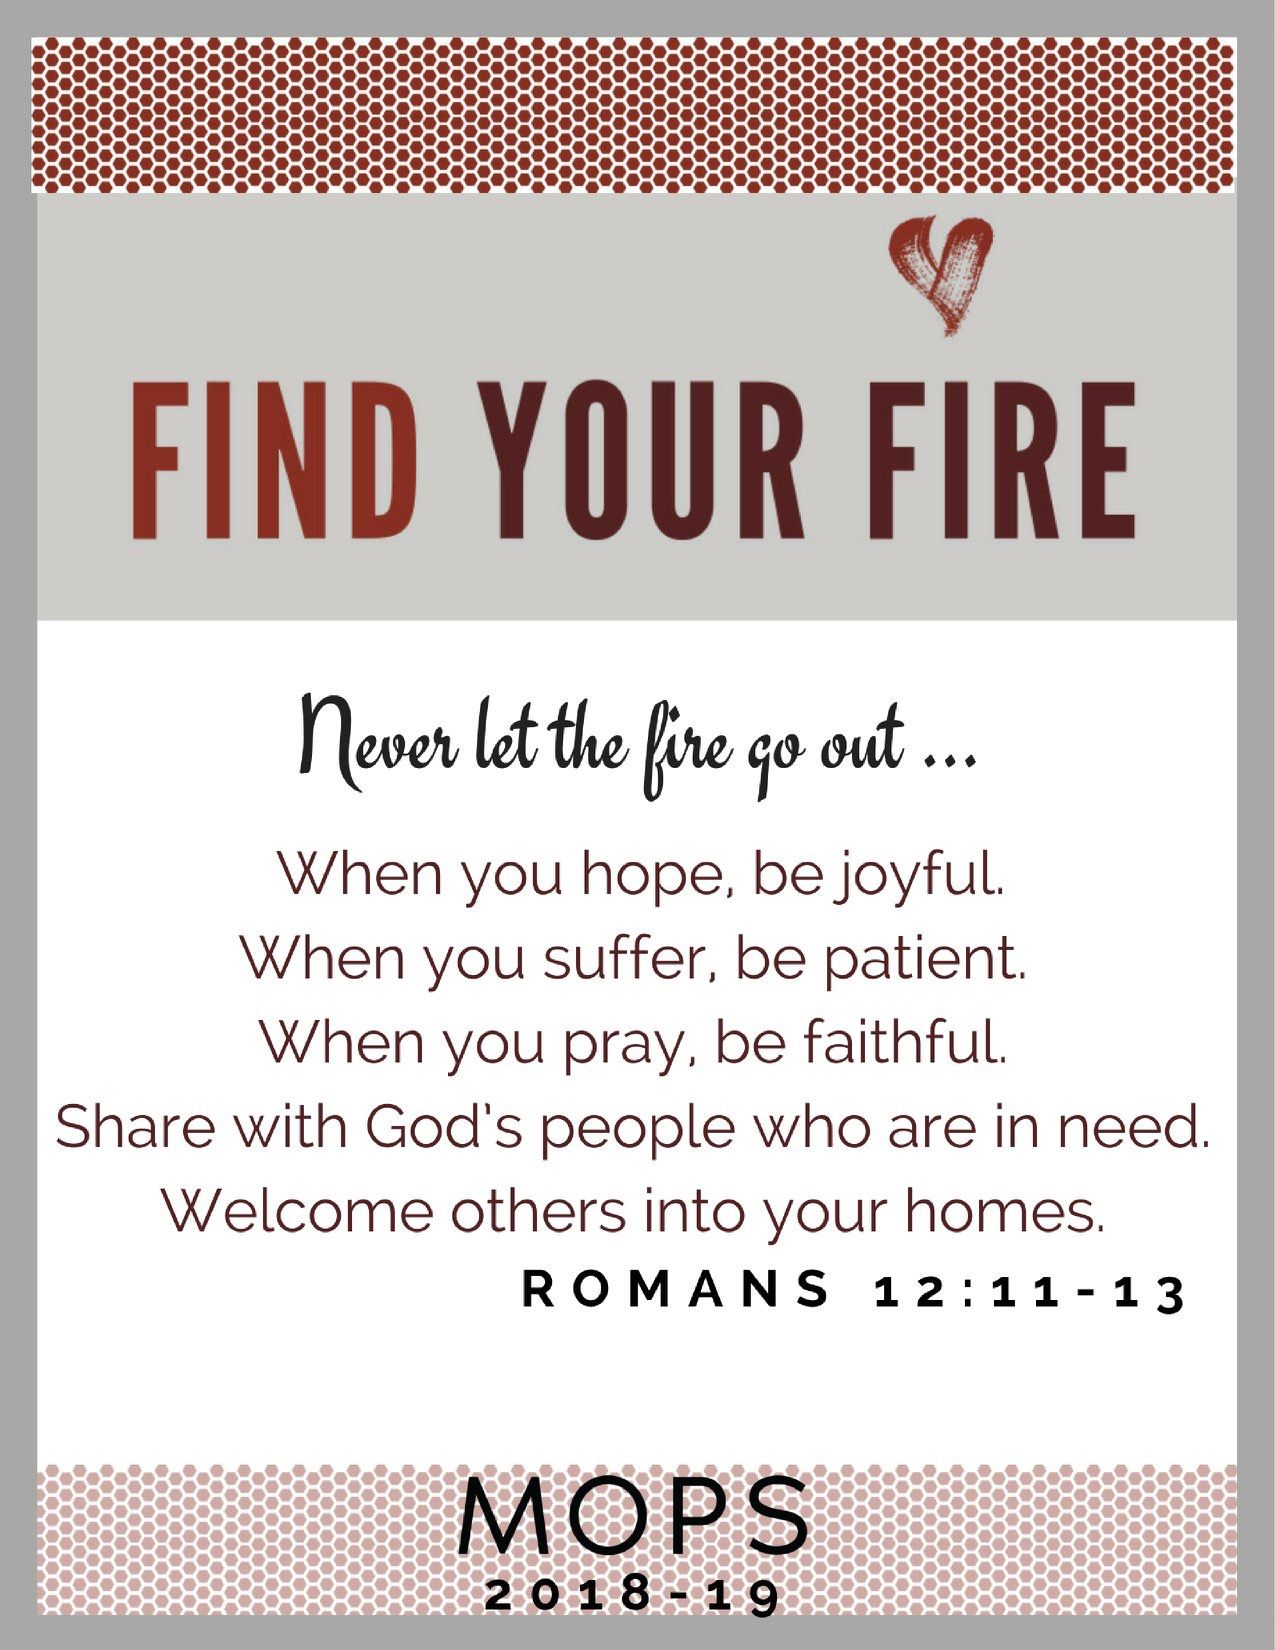 Pin By Kristal Cohle On MOPS- Find Your Fire